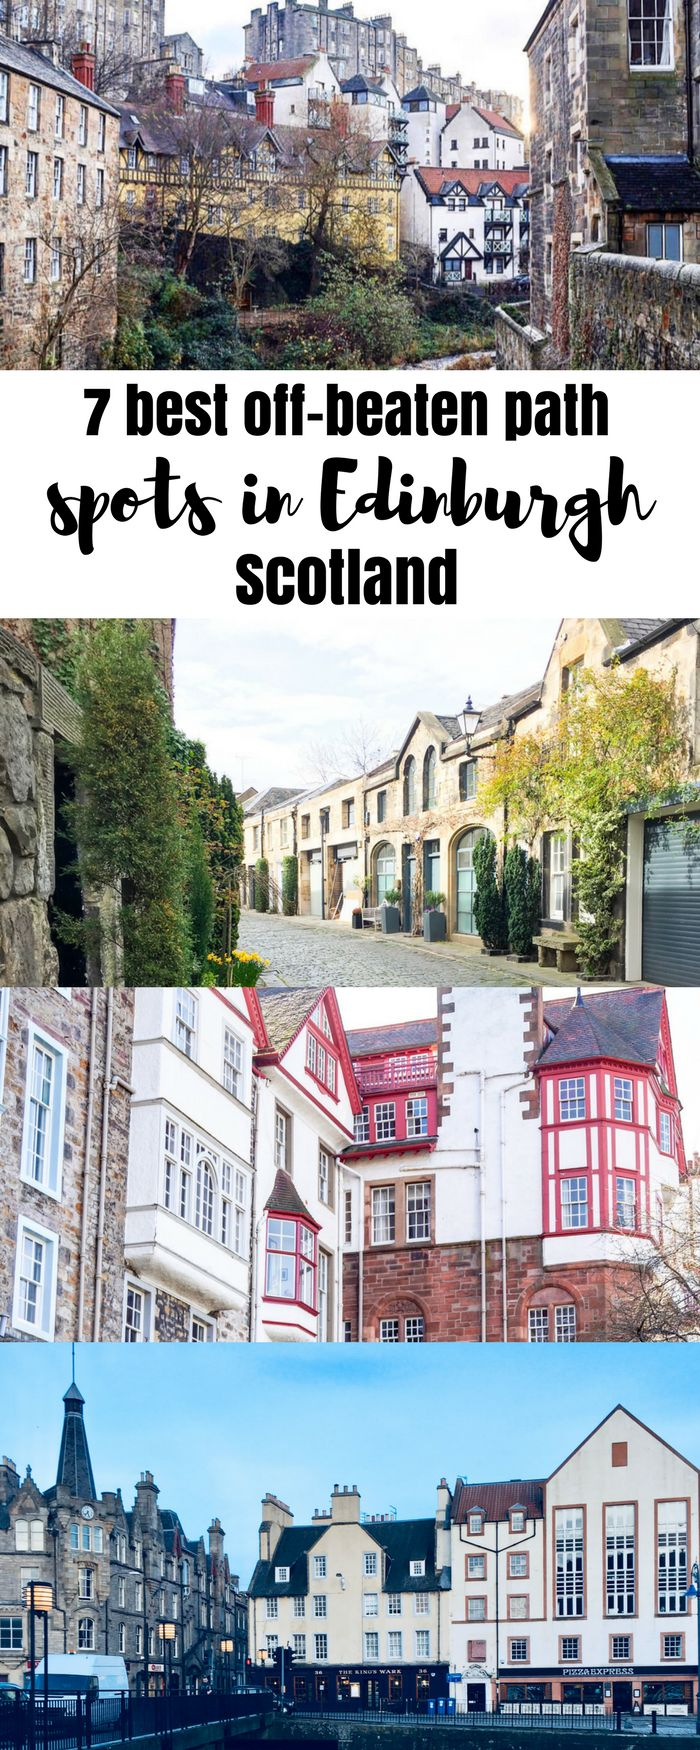 Best Europe Travel Images On Pinterest A Plane Cities And - The 7 best cities to buy property in europe